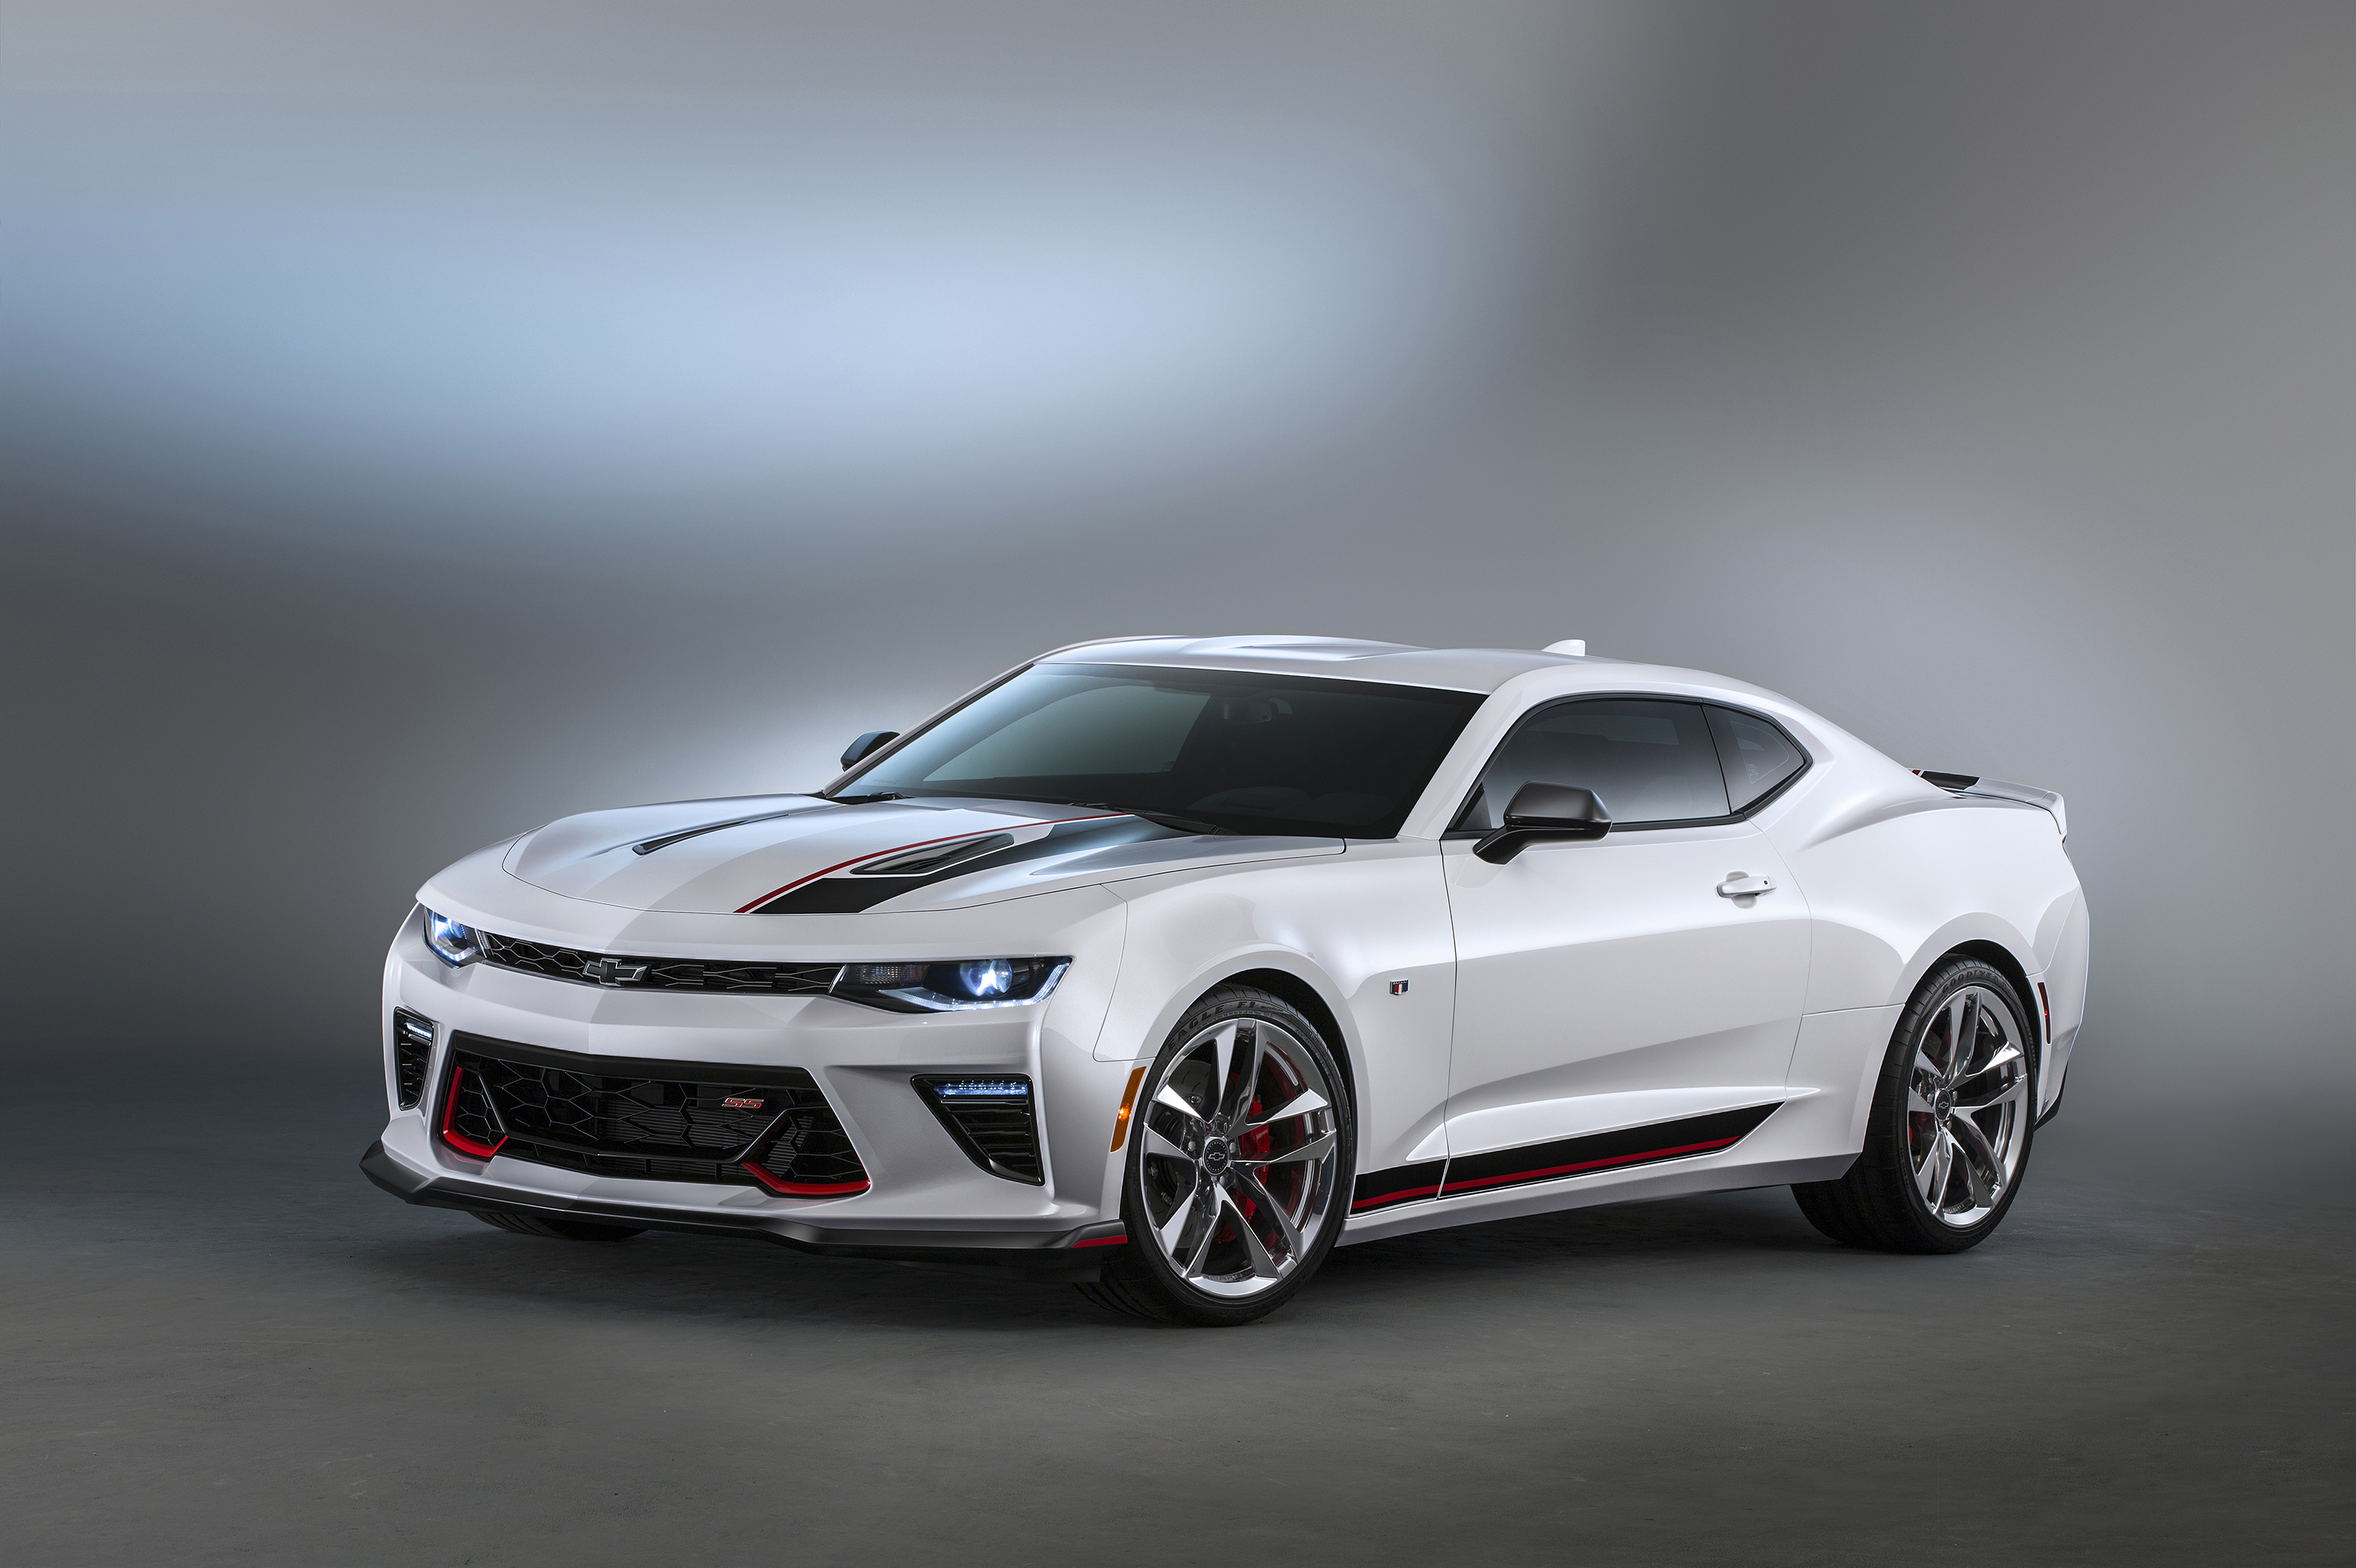 Gen Six Camaro Concepts Shine At Sema Show